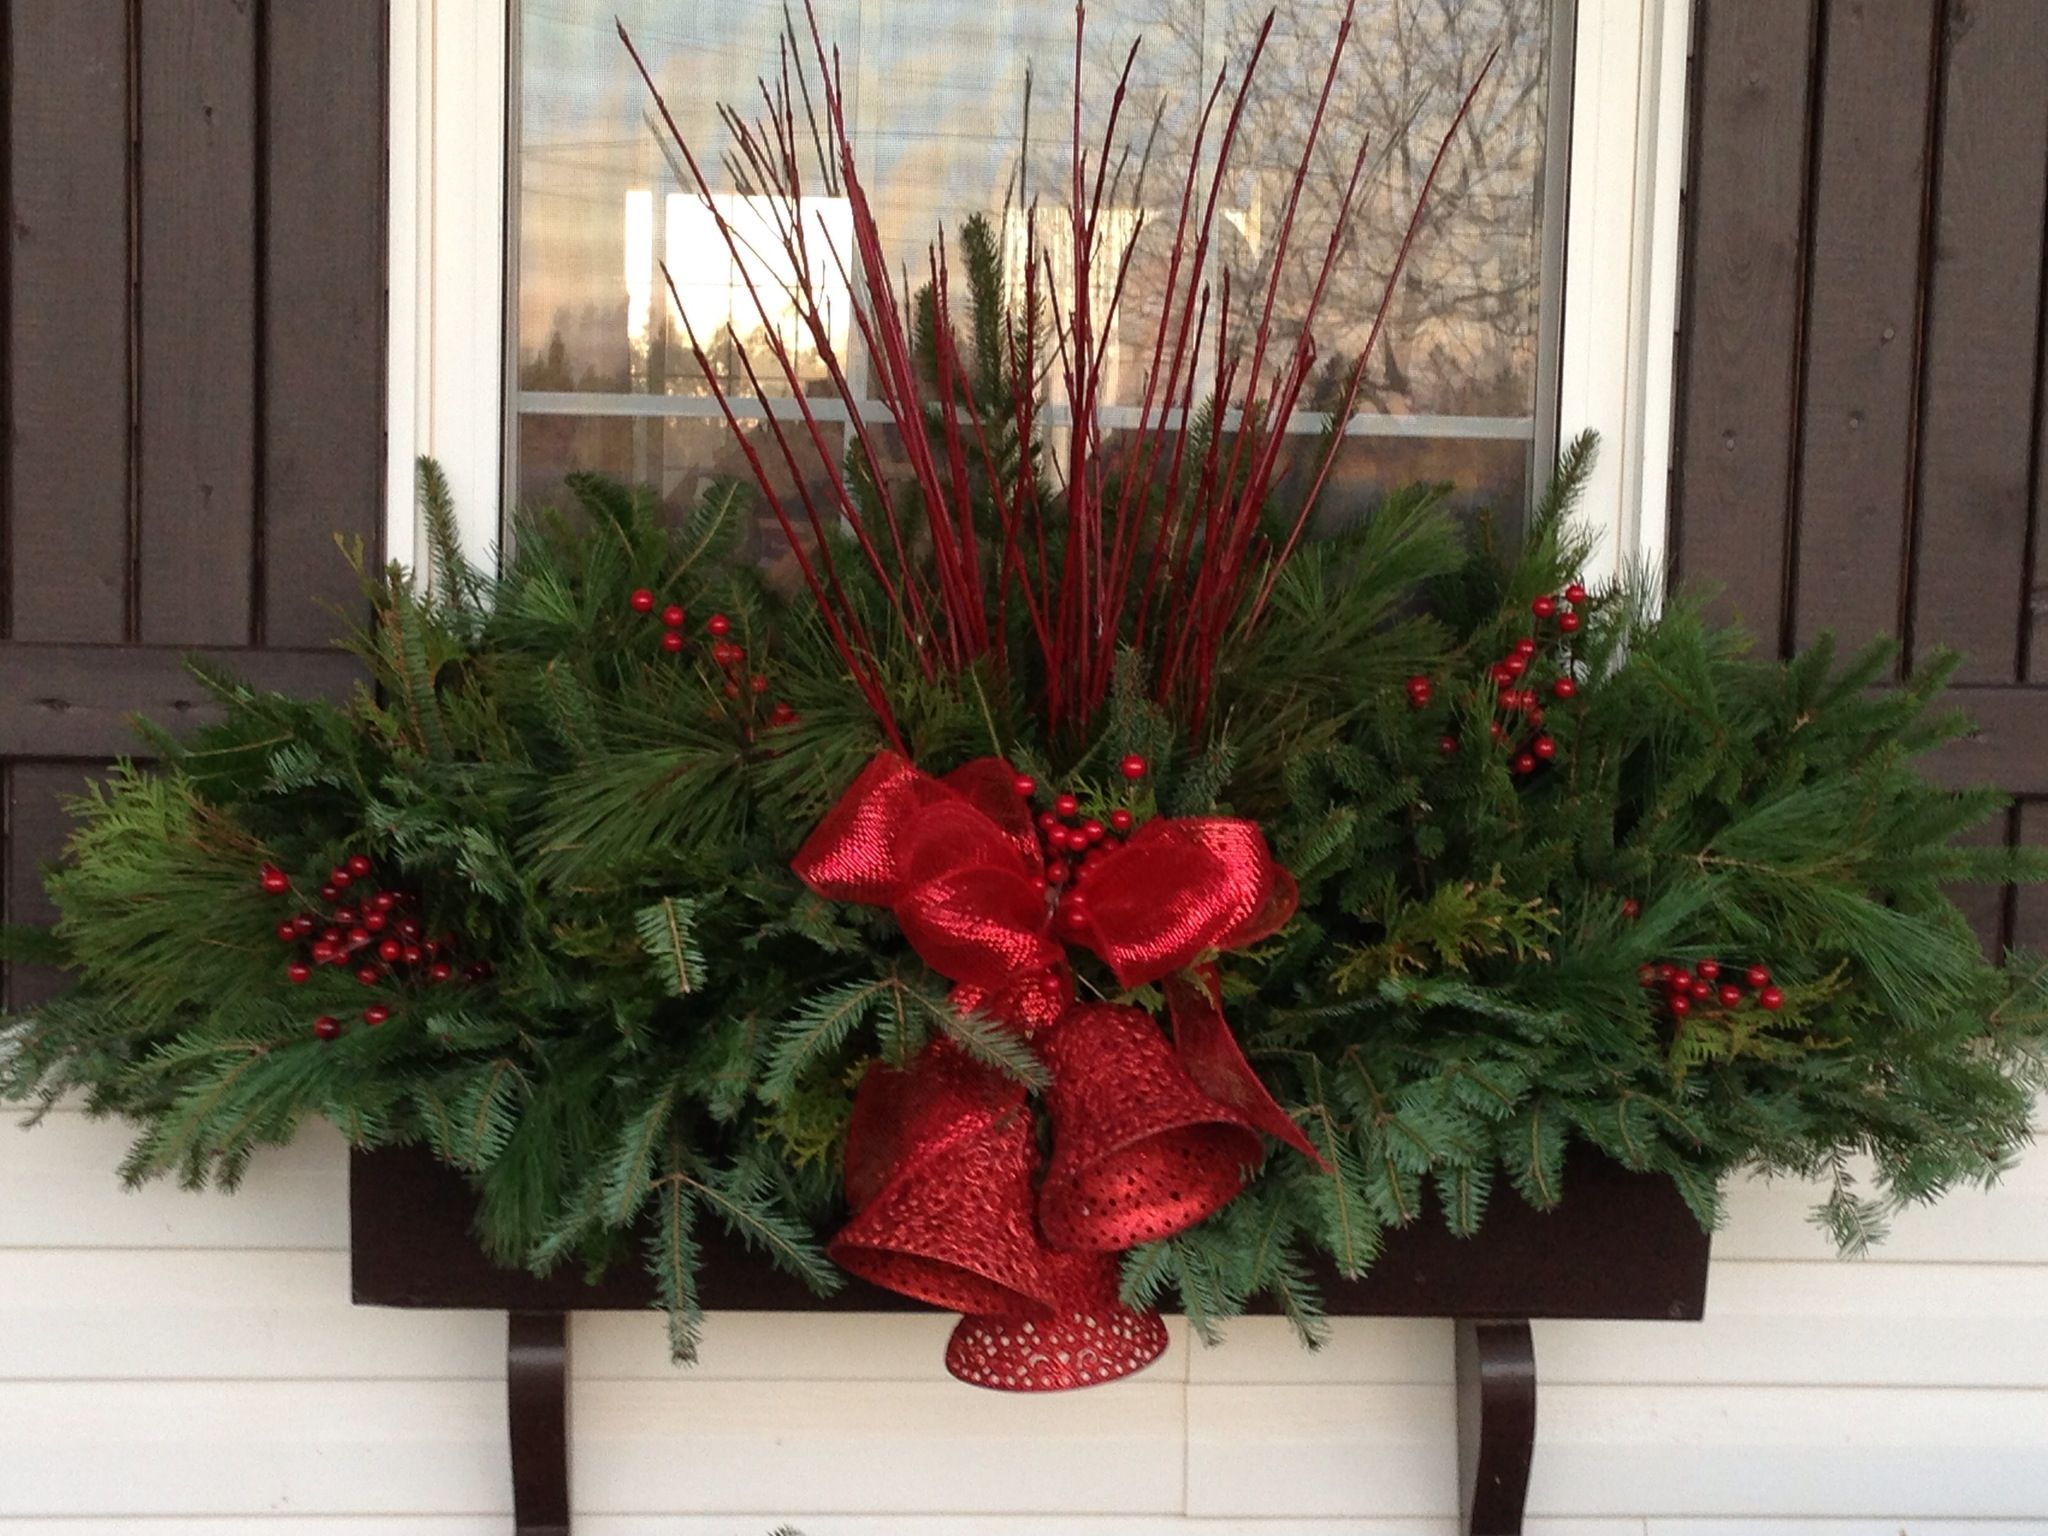 20 easy holiday window box ideas15